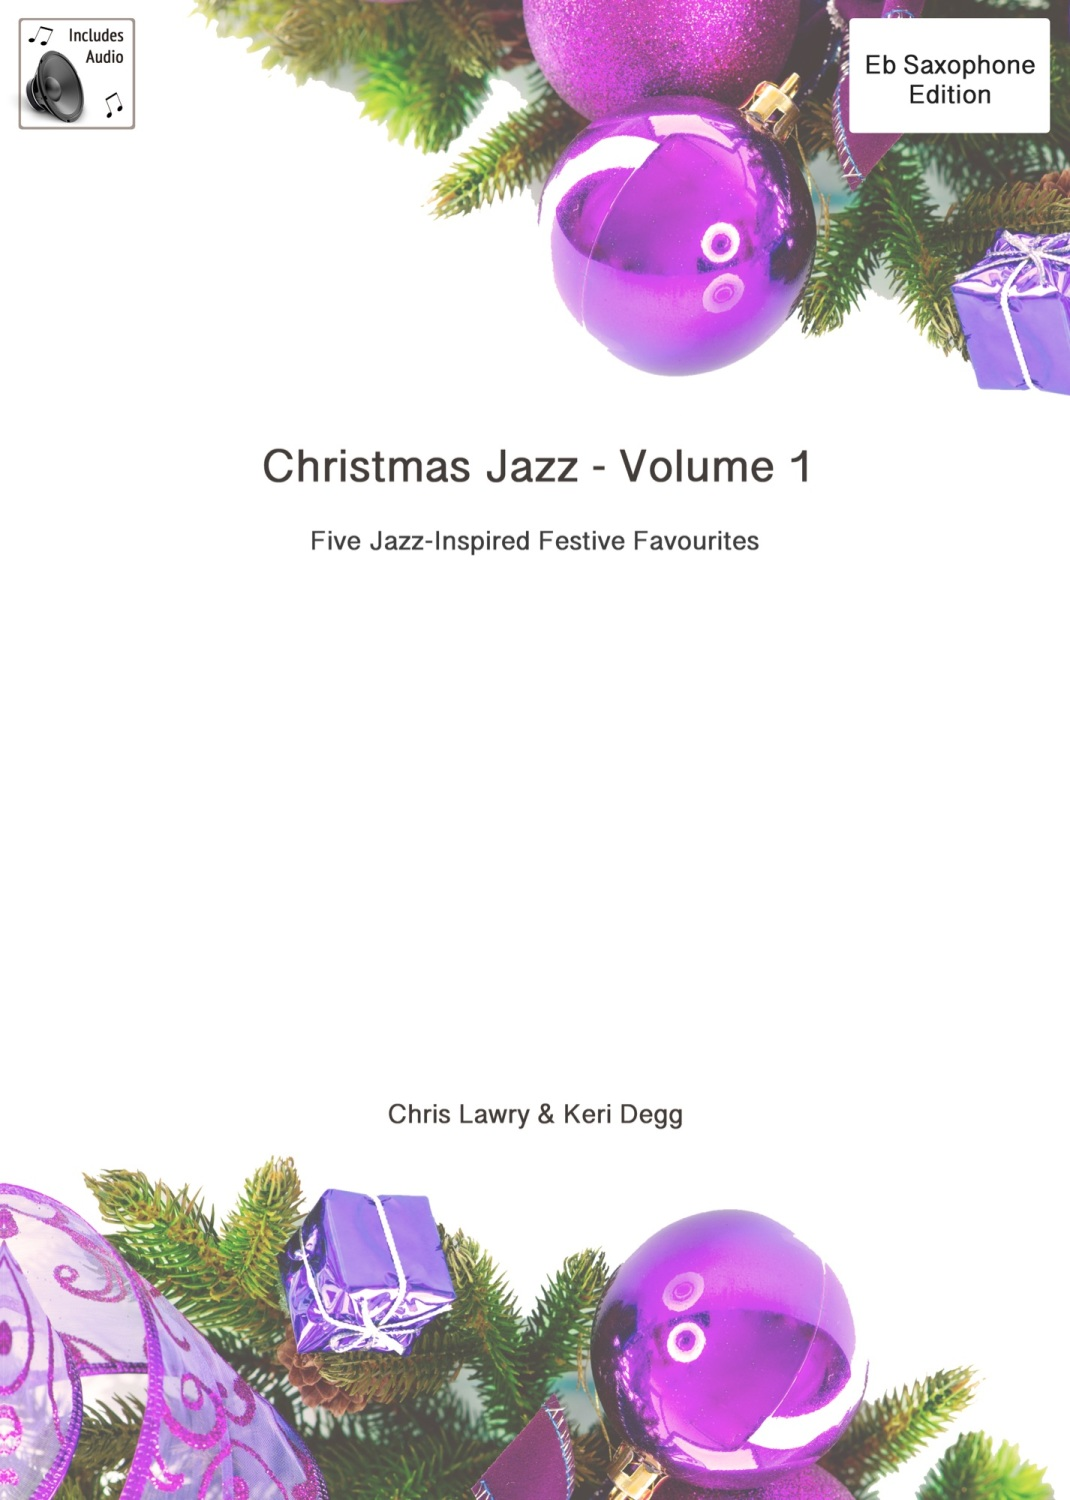 Christmas Jazz for Eb Sax (Alto/Baritone) & Piano Bargain Pack (all 5 piece